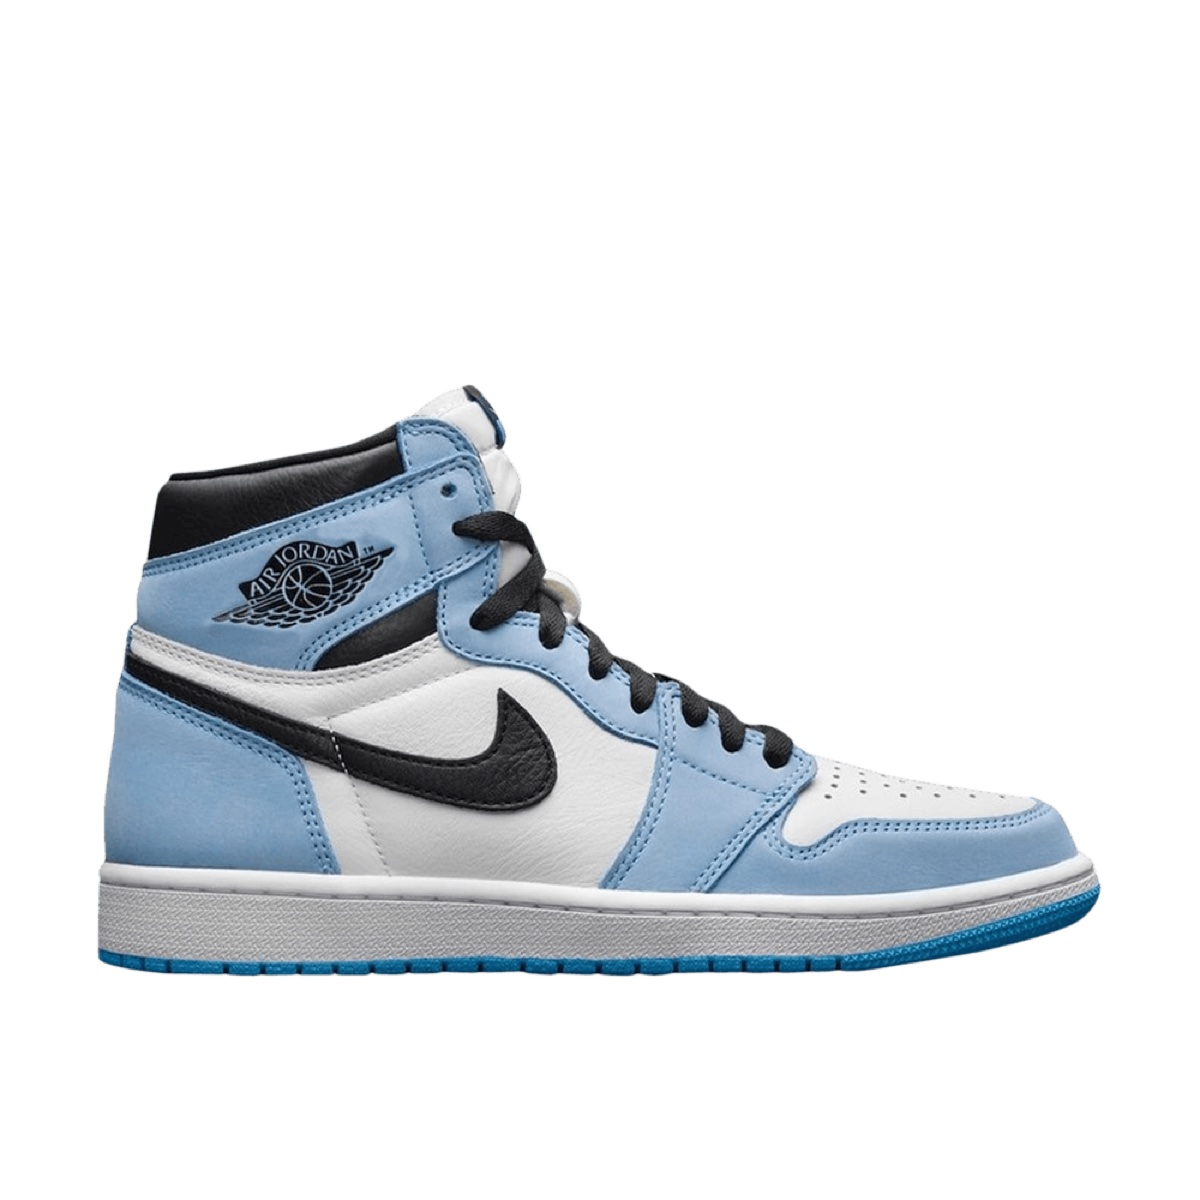 Jordan 1 Retro High White University Blue